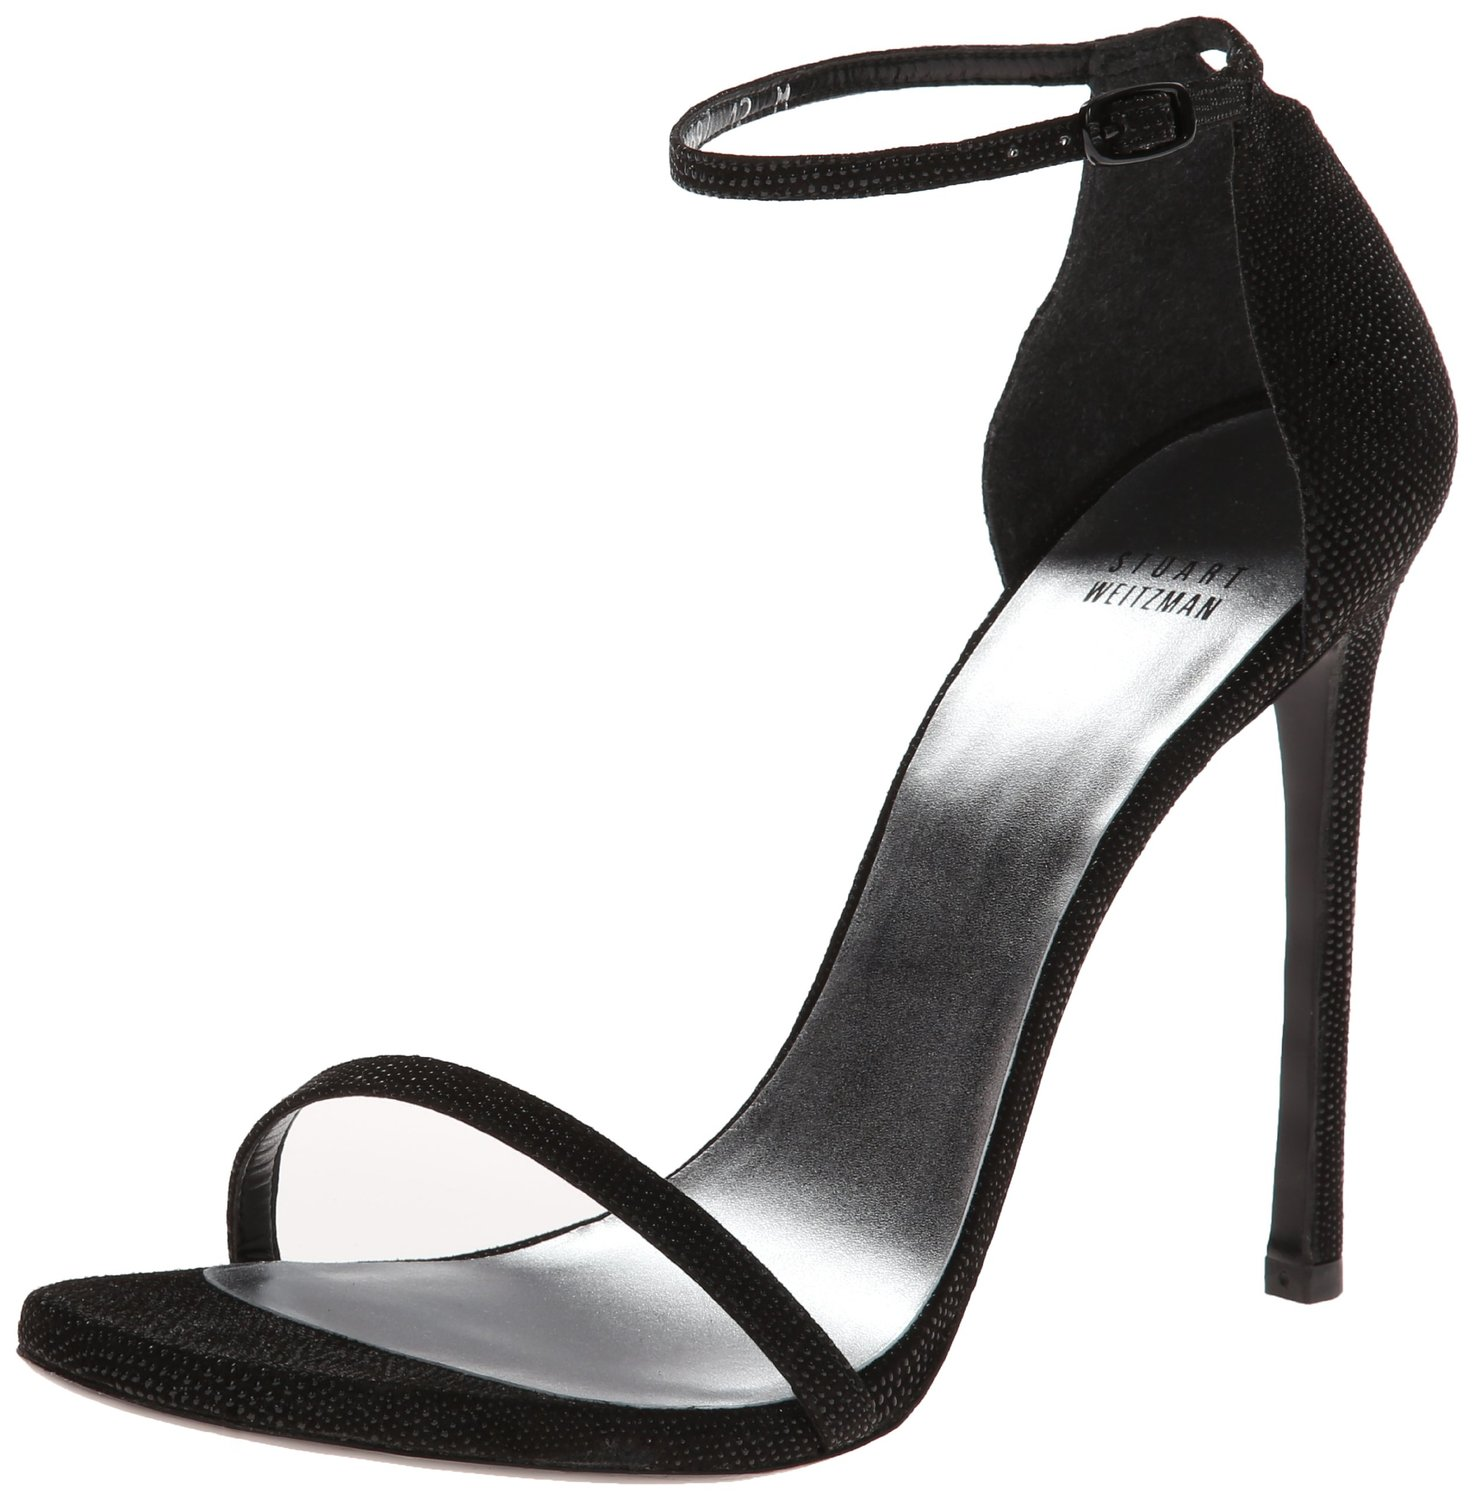 Amazon.com: Stuart Weitzman Women's Nudist Dress Sandal: Shoes